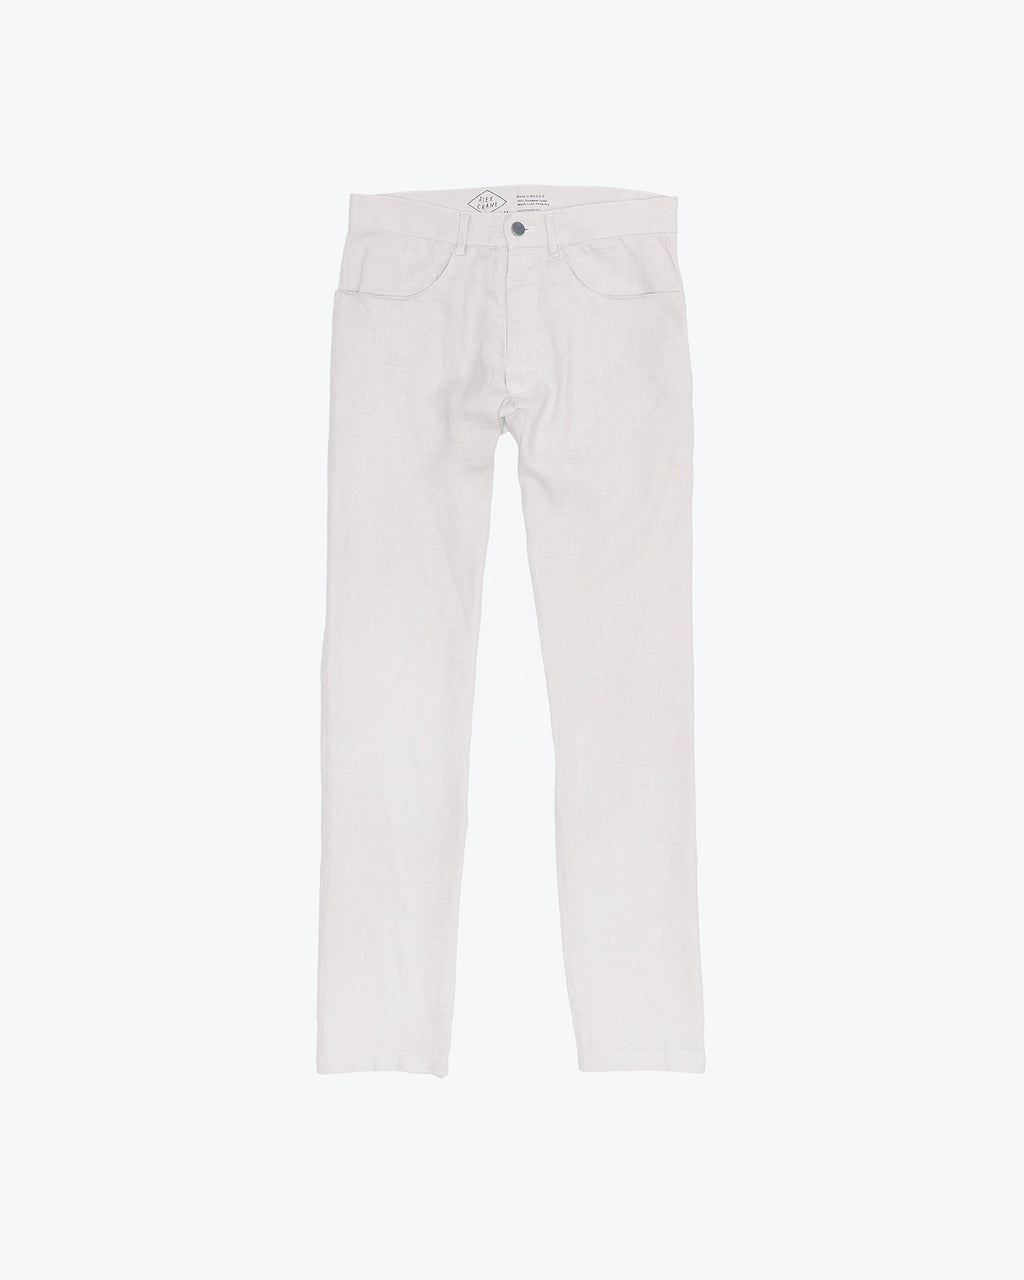 Men's Cham Pants / Bone